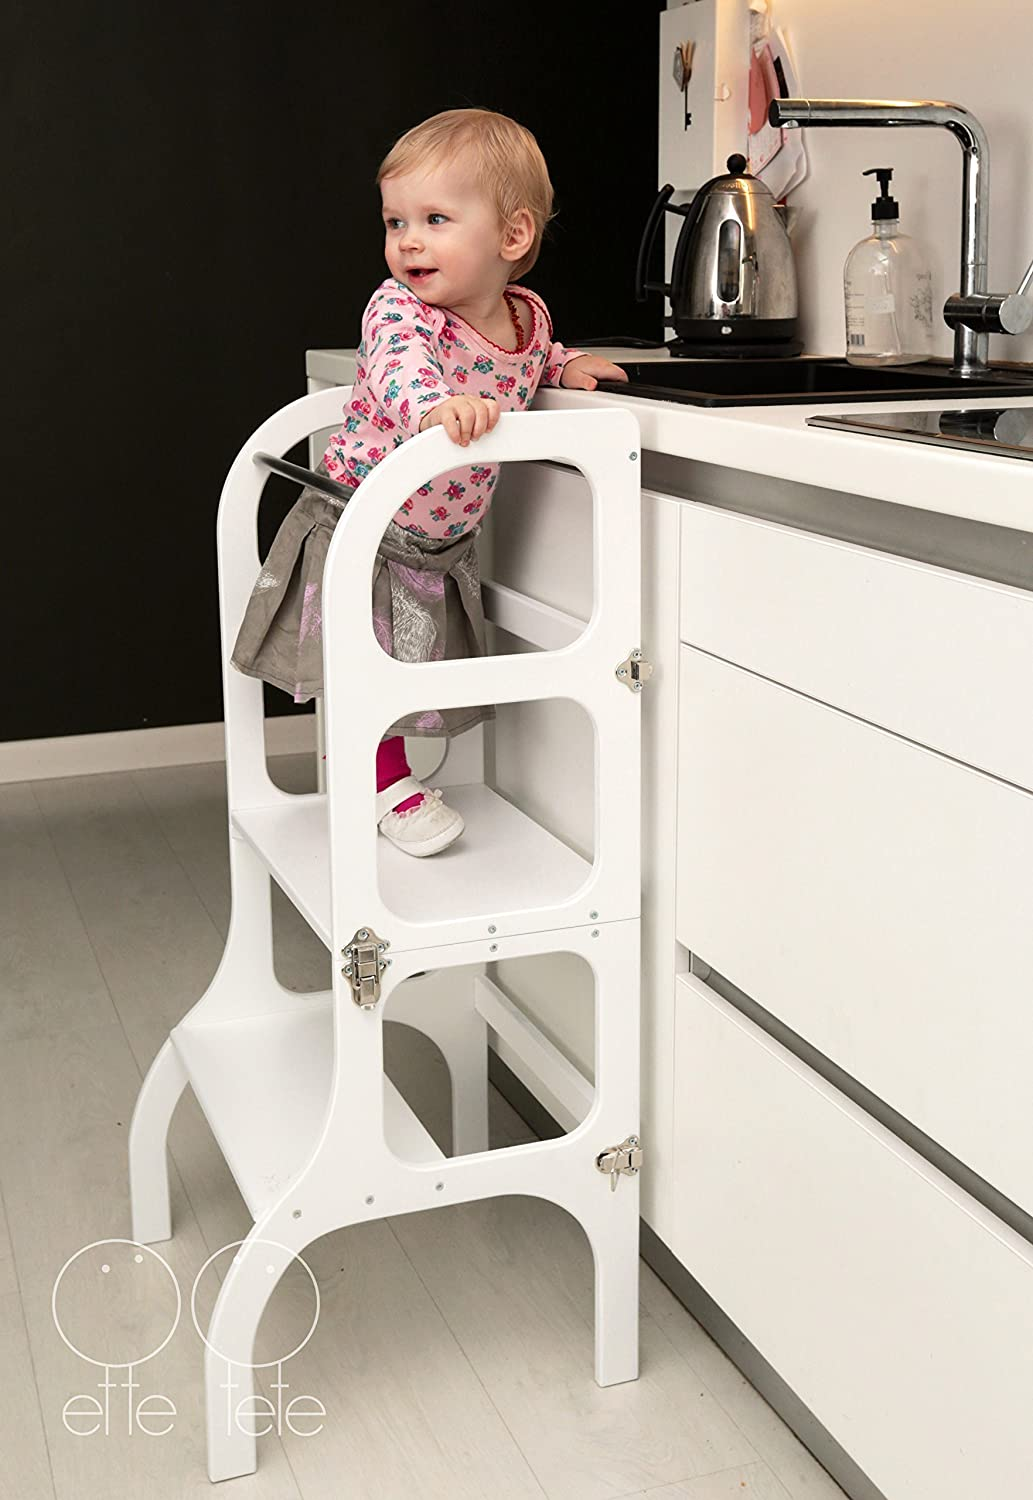 kitchen step stool WHITE color//antique BRASS clasps Montessori learning stool table//chair StepnSit all-in-one Convertible Helper tower